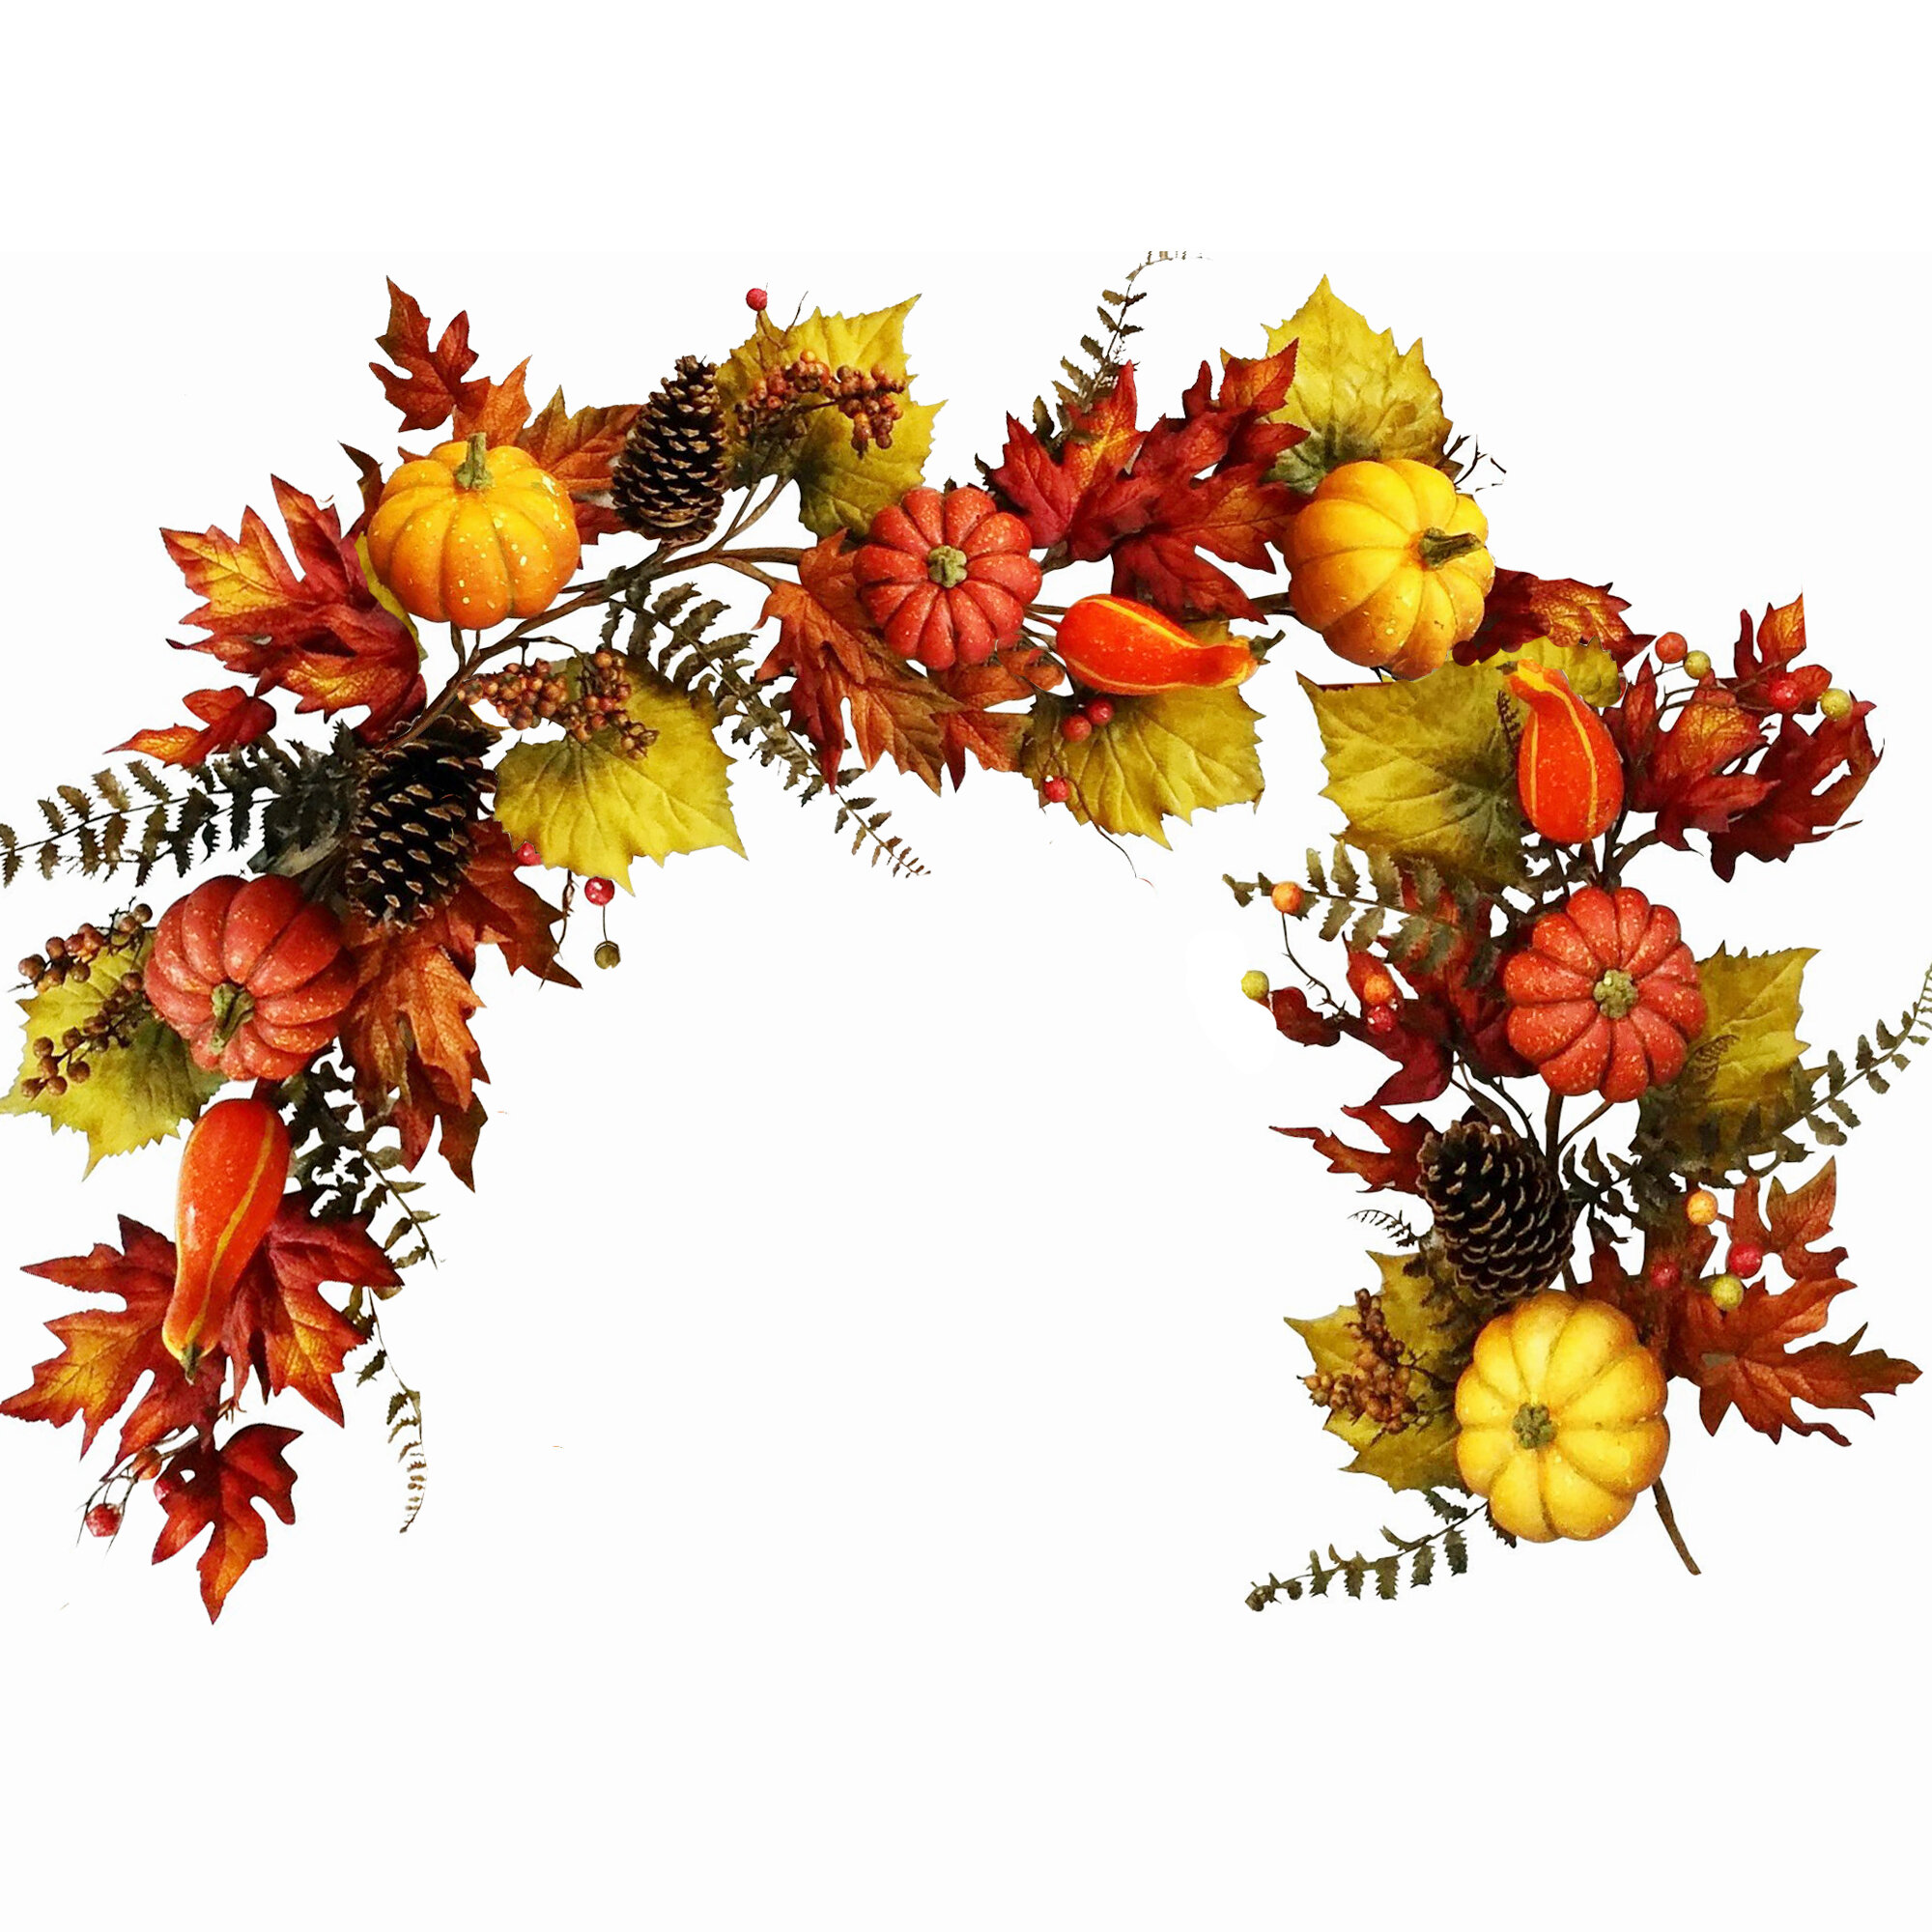 Decorative Swags 6 Foot Fall Maple Leaf Garland With Berries Sunflower Pumpkin Fall Garland Hanging Vine Decoration Autumn Fall Wedding Party Thanksgiving Home Decor Home Kitchen